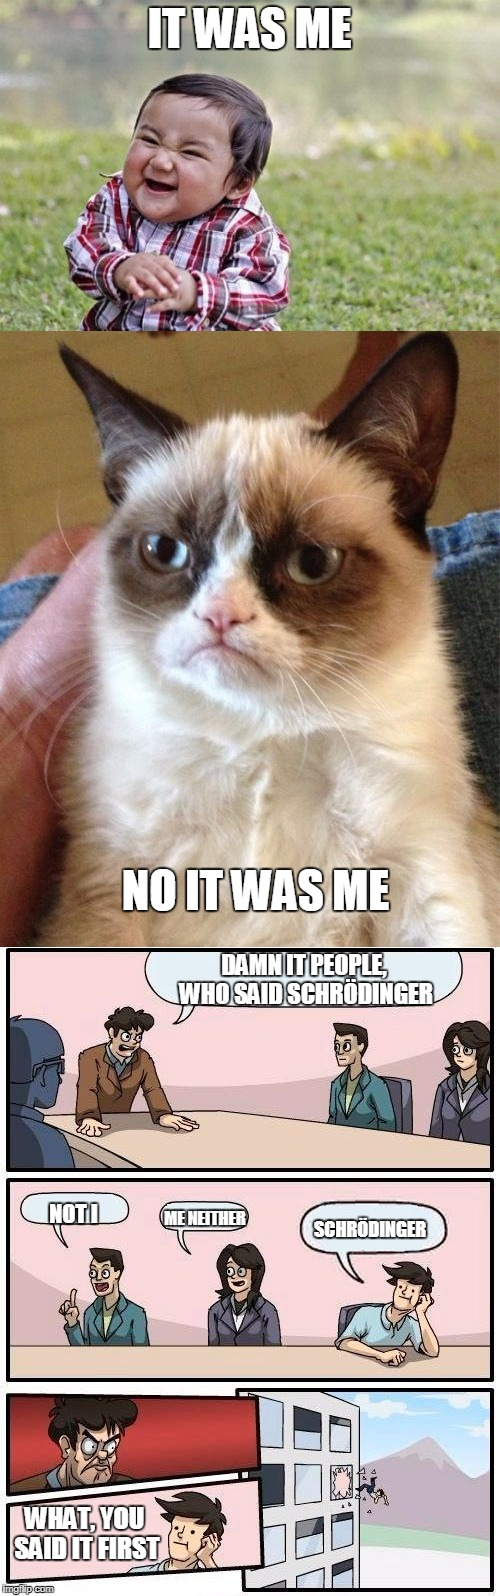 IT WAS ME NO IT WAS ME DAMN IT PEOPLE, WHO SAID SCHRÖDINGER NOT I ME NEITHER SCHRÖDINGER WHAT, YOU SAID IT FIRST | made w/ Imgflip meme maker